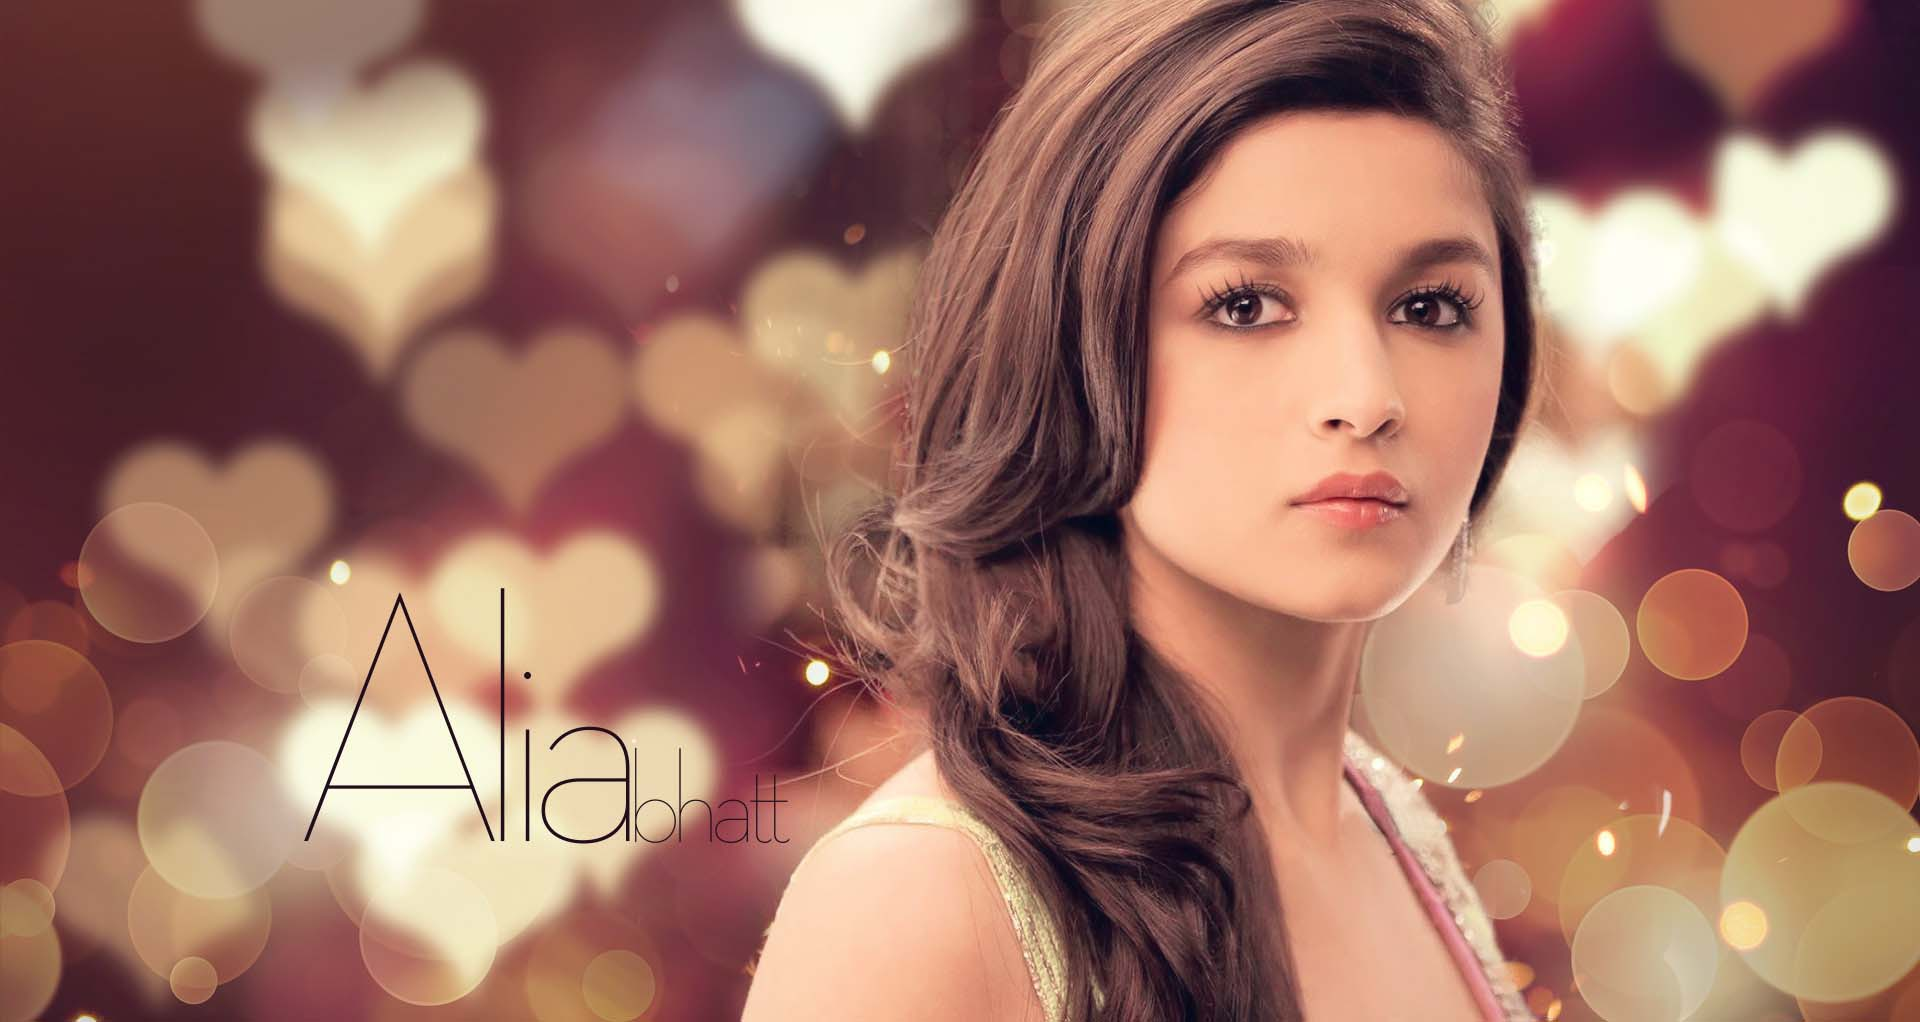 alia bhatt wallpapers - wallpaper cave